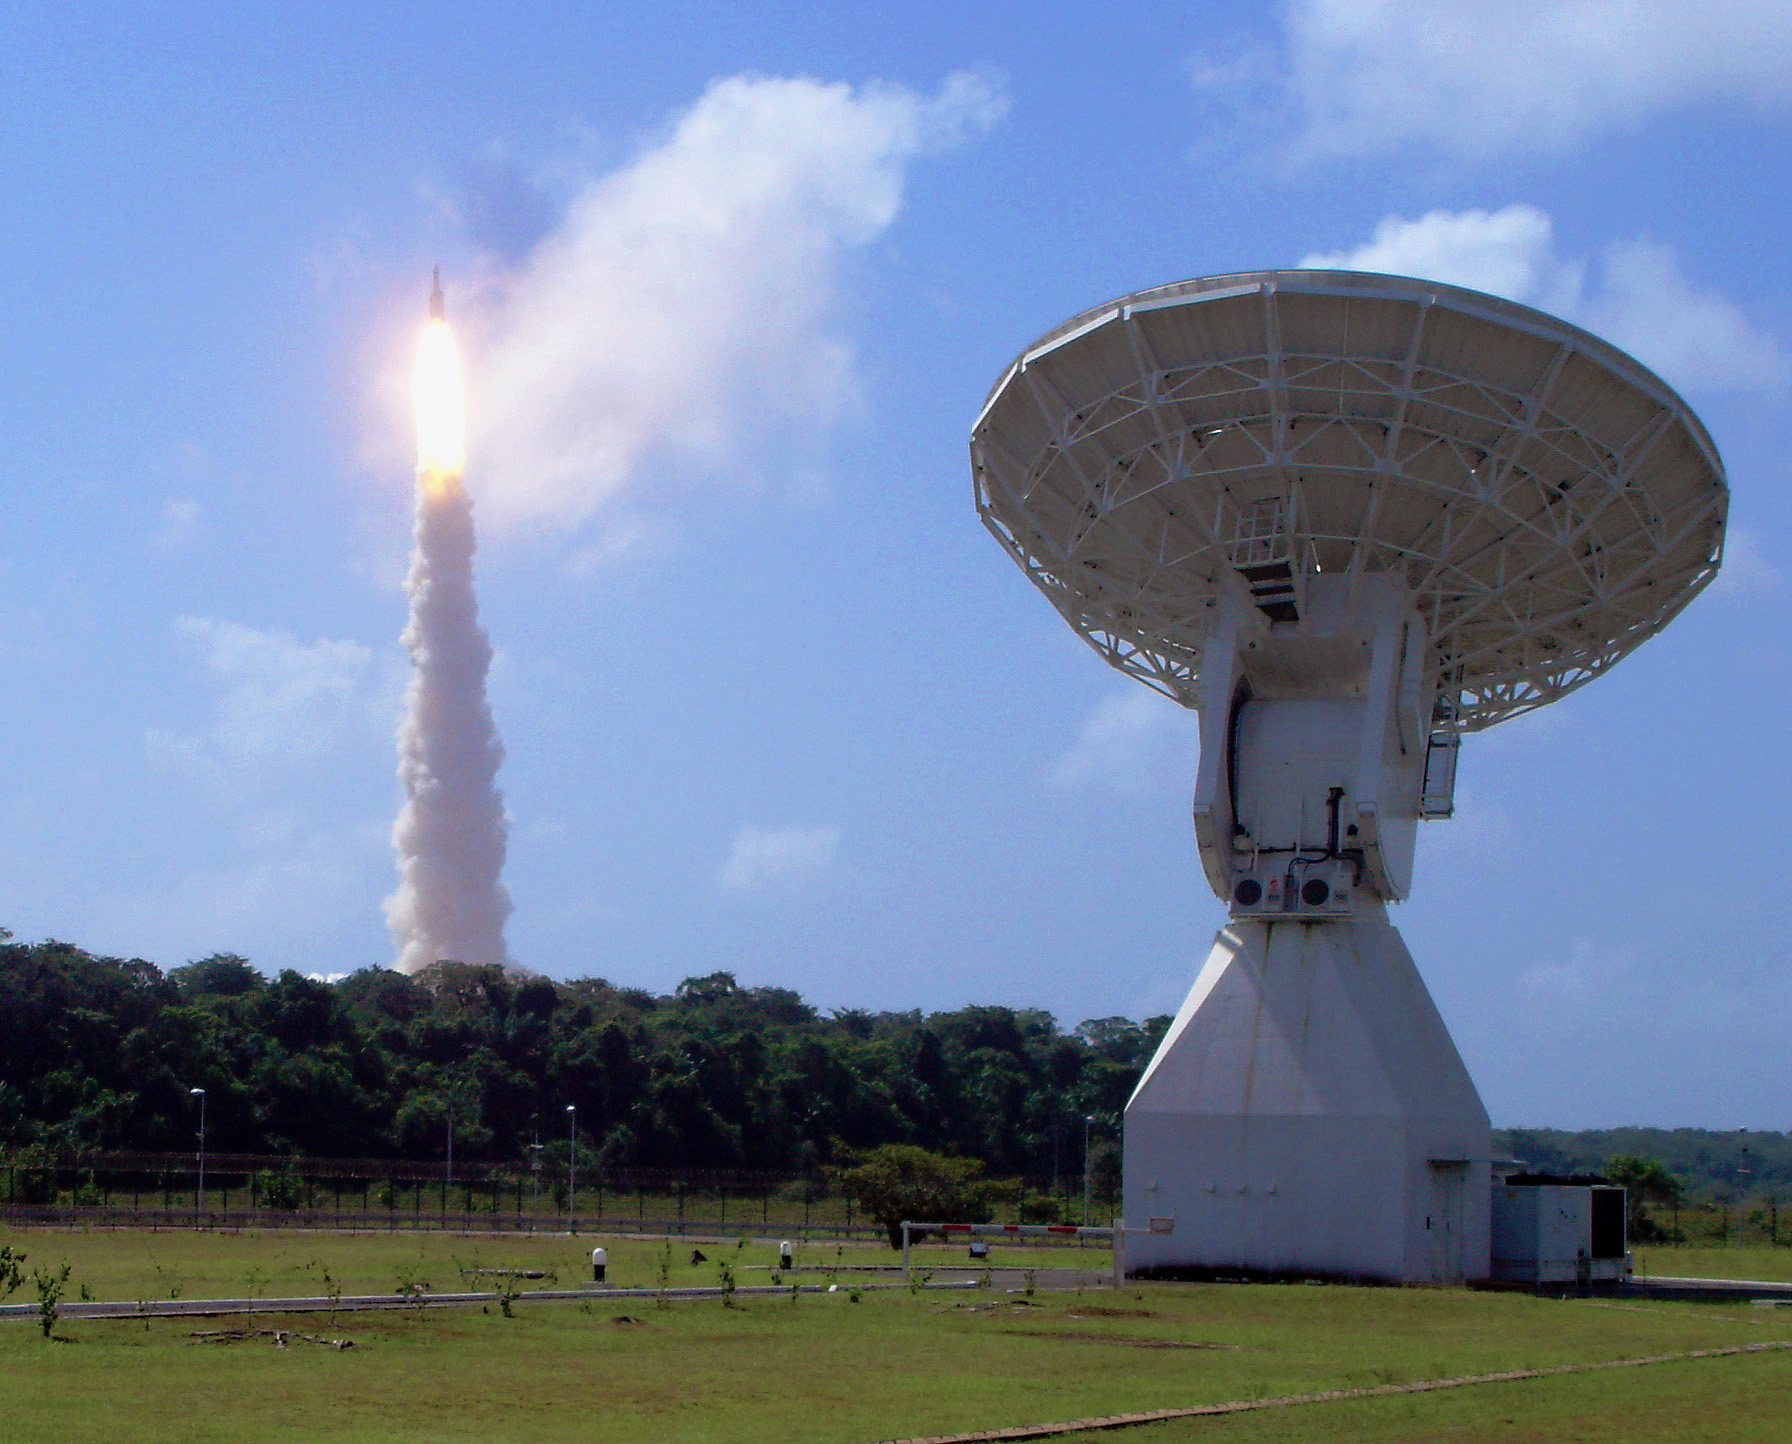 Ariane 5 launch in Kourou